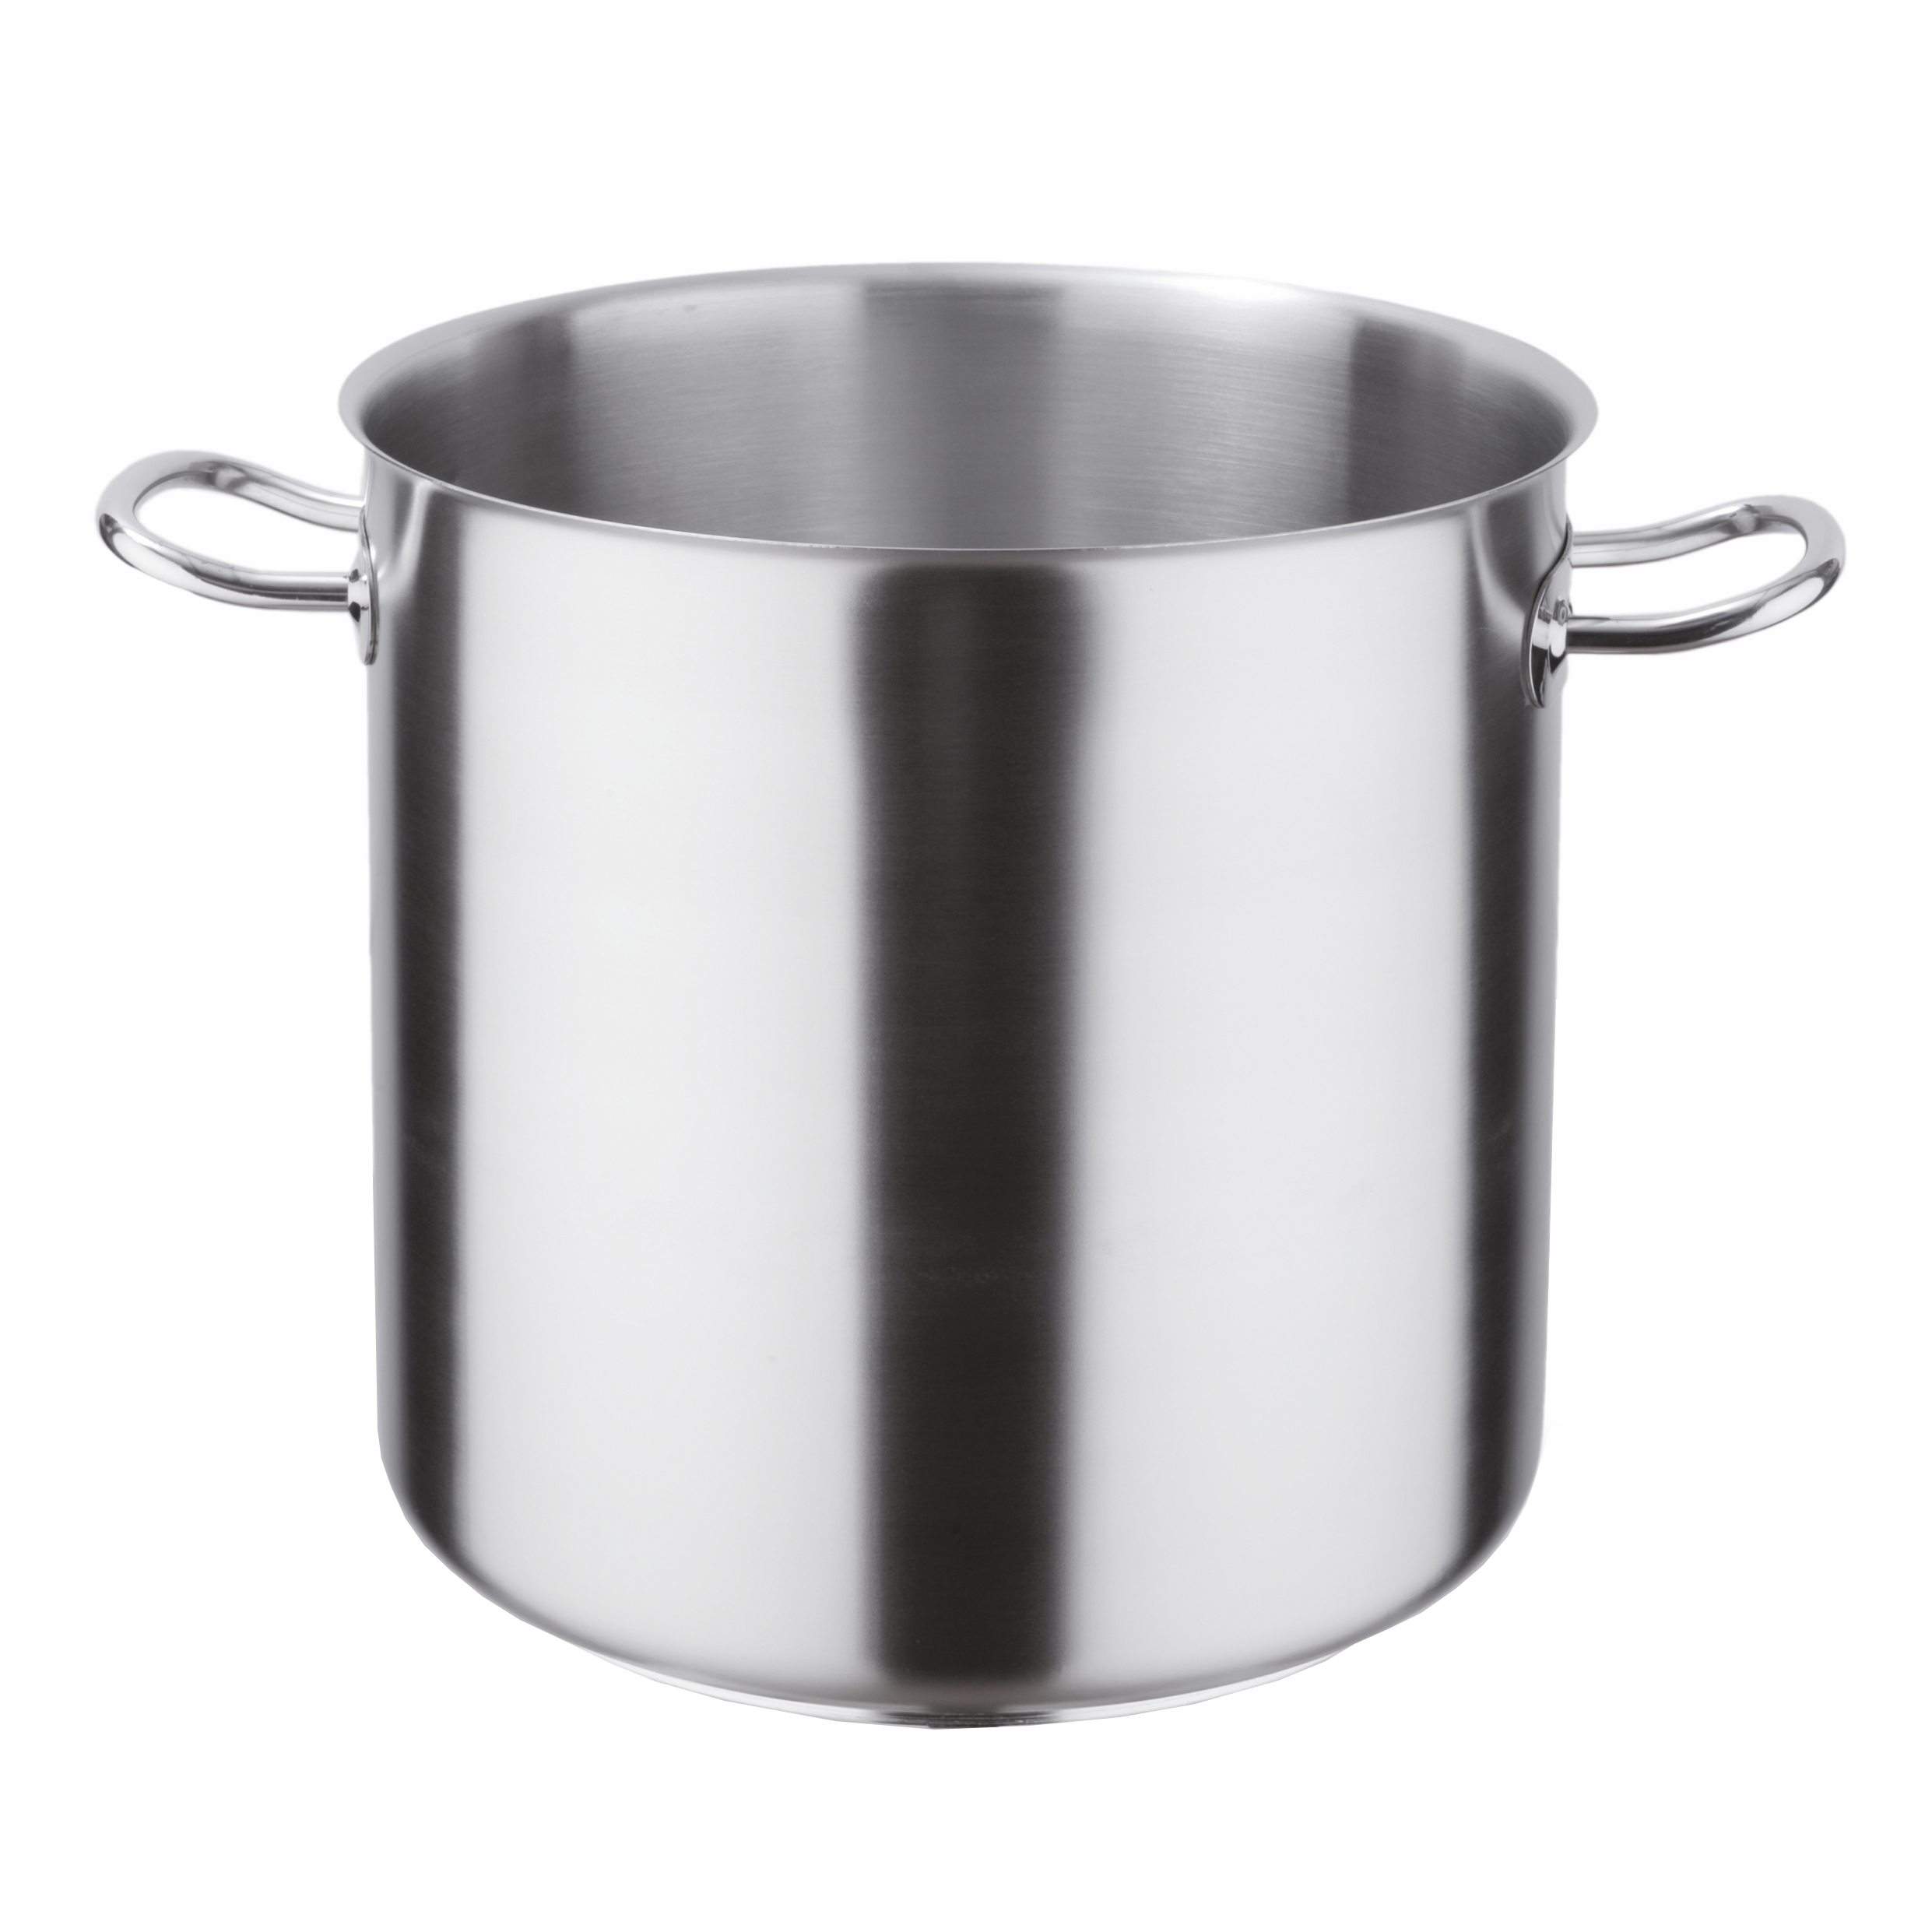 Vollrath V218028 stock pot